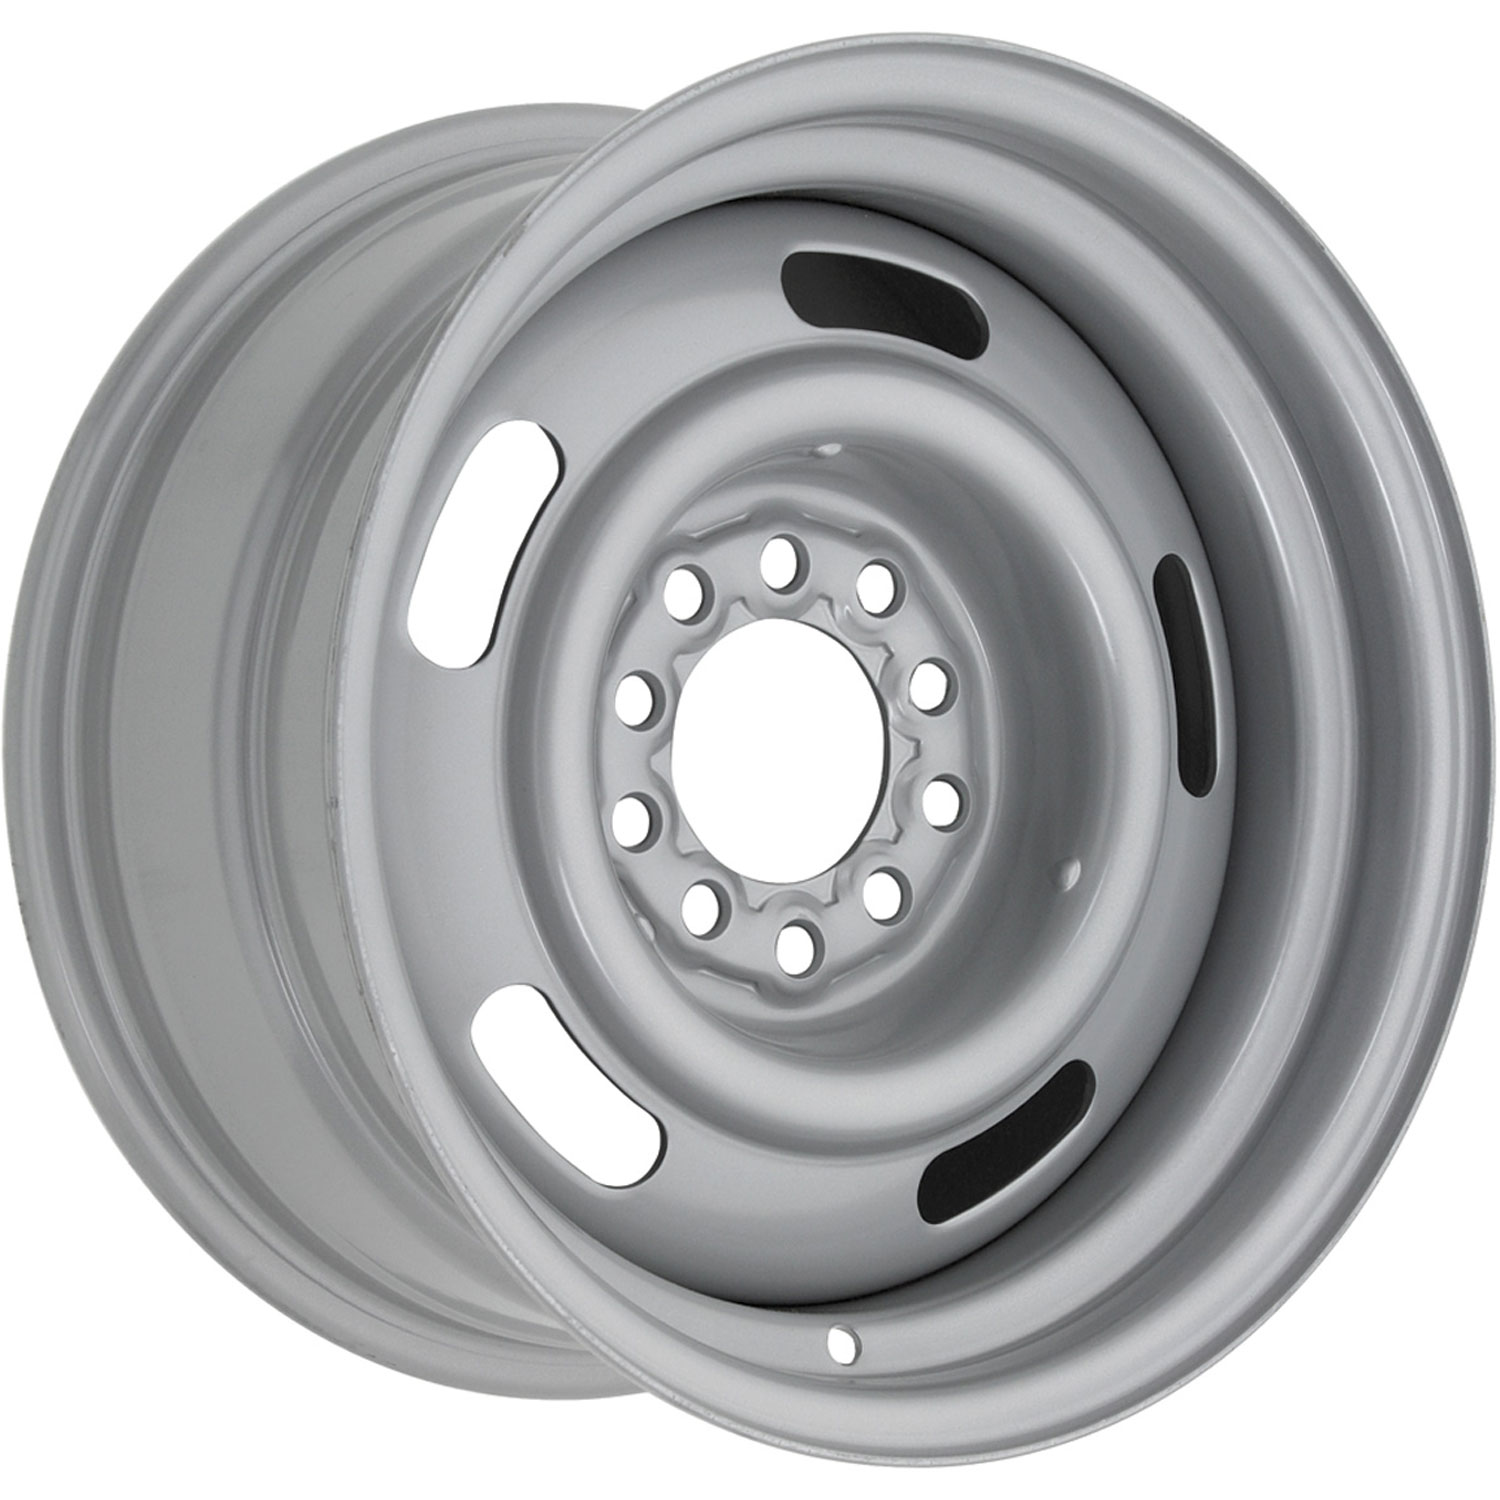 Silver rally wheel manufactured by restroparts